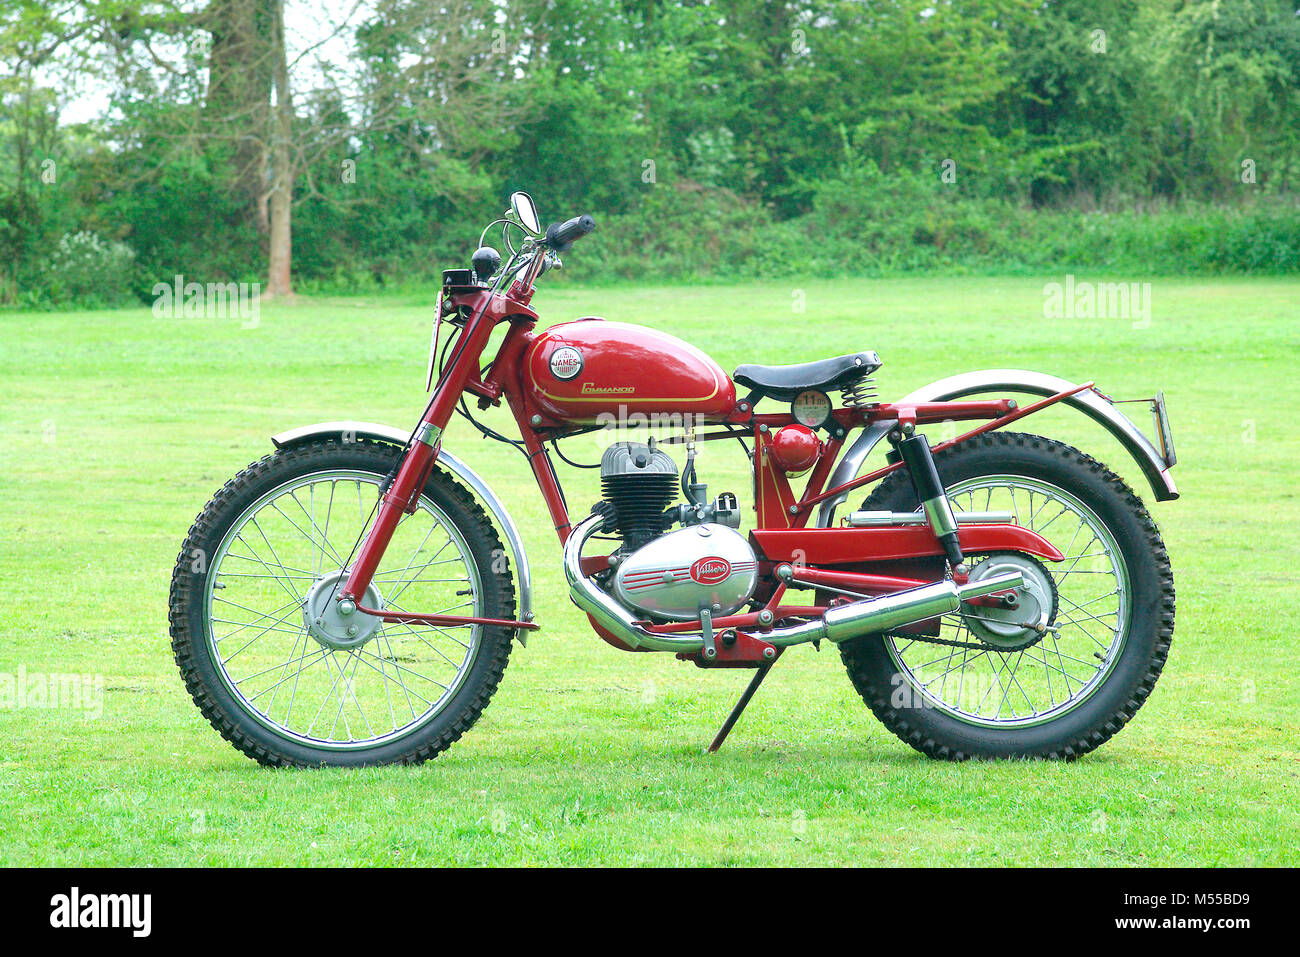 197cc Stock Photos & 197cc Stock Images - Alamy